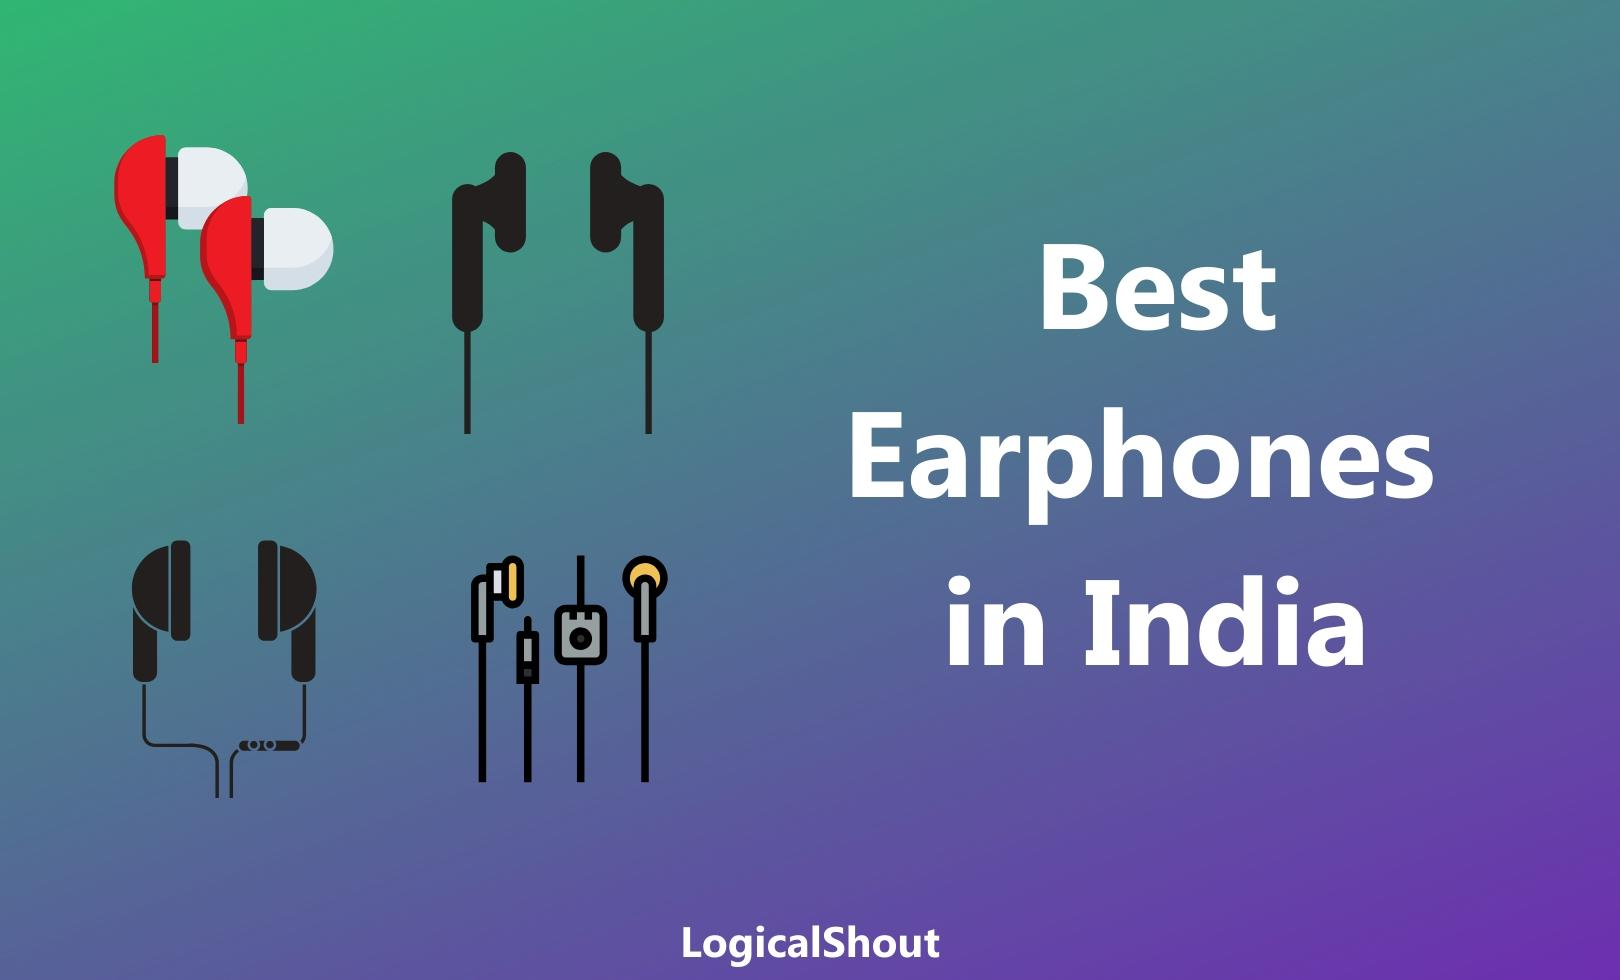 Best Earphones in India